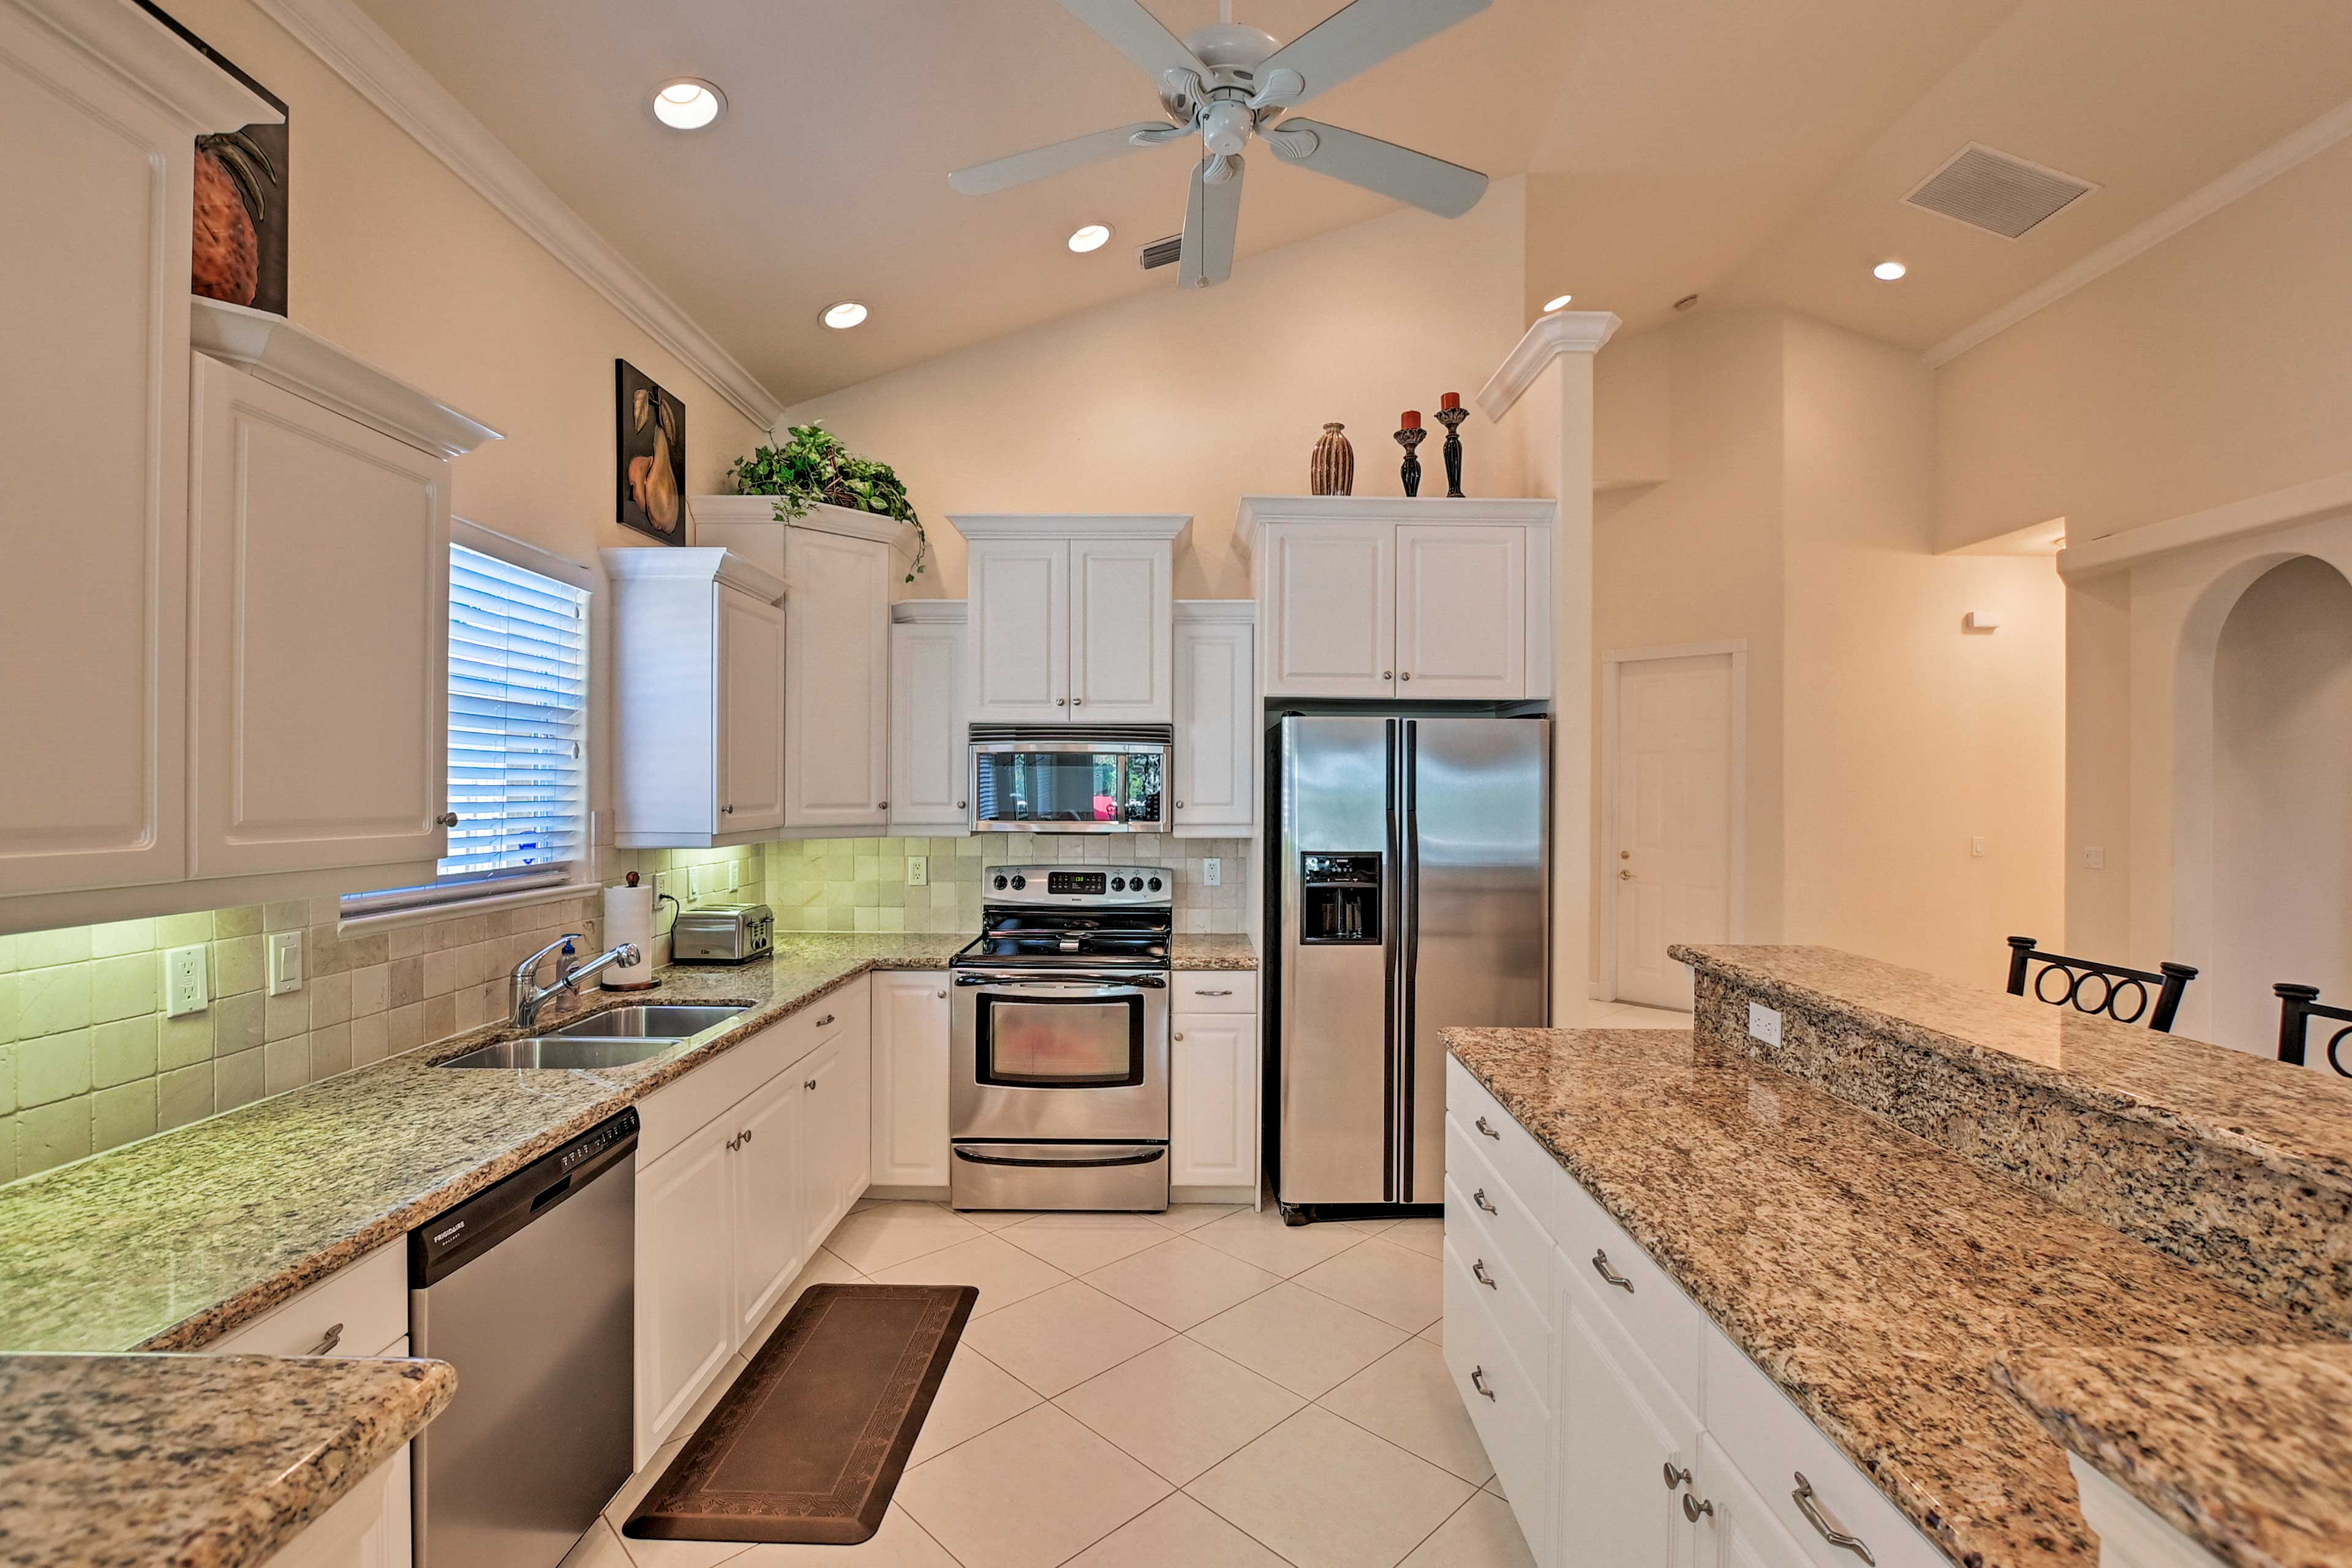 Prepare your favorite recipes in this spacious kitchen.